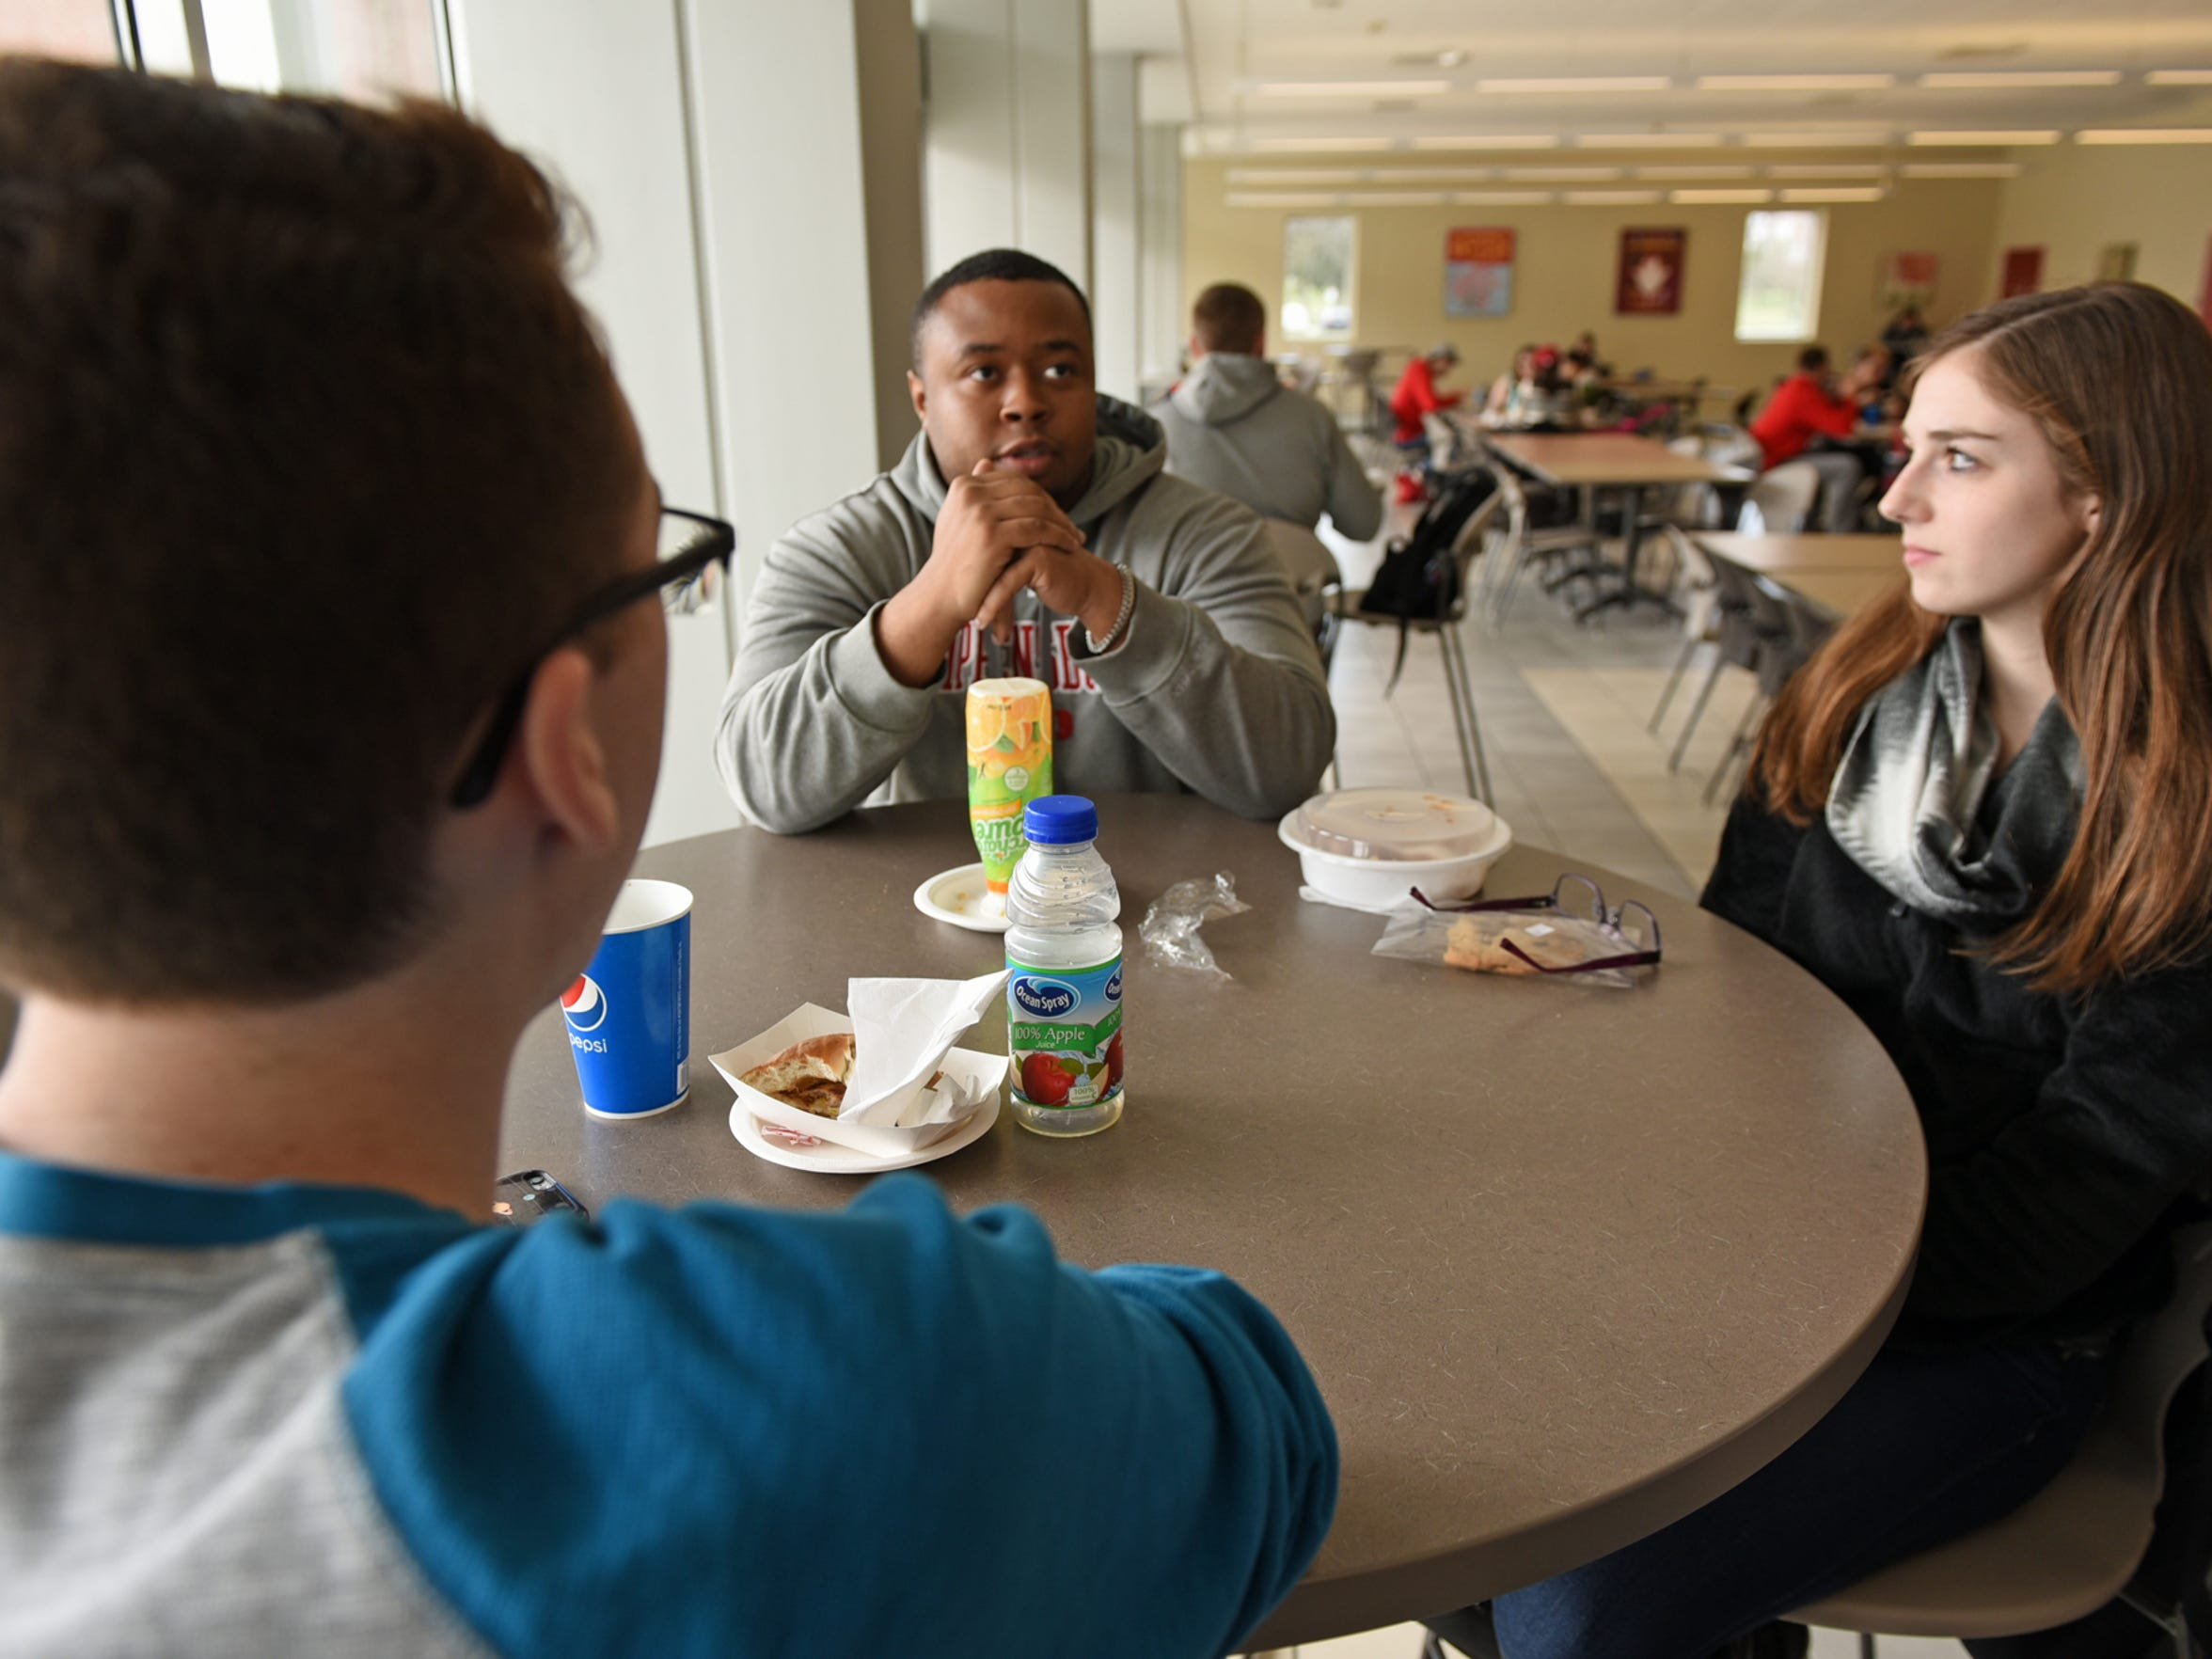 Shippensburg University senior Miles Dean talks said that he does not plan to carry college debt for as long as some students. Dean and students Lane Yutzy and Brooke Poe, right, talked to reporters Thursday, March 2, 2017 on the college campus.